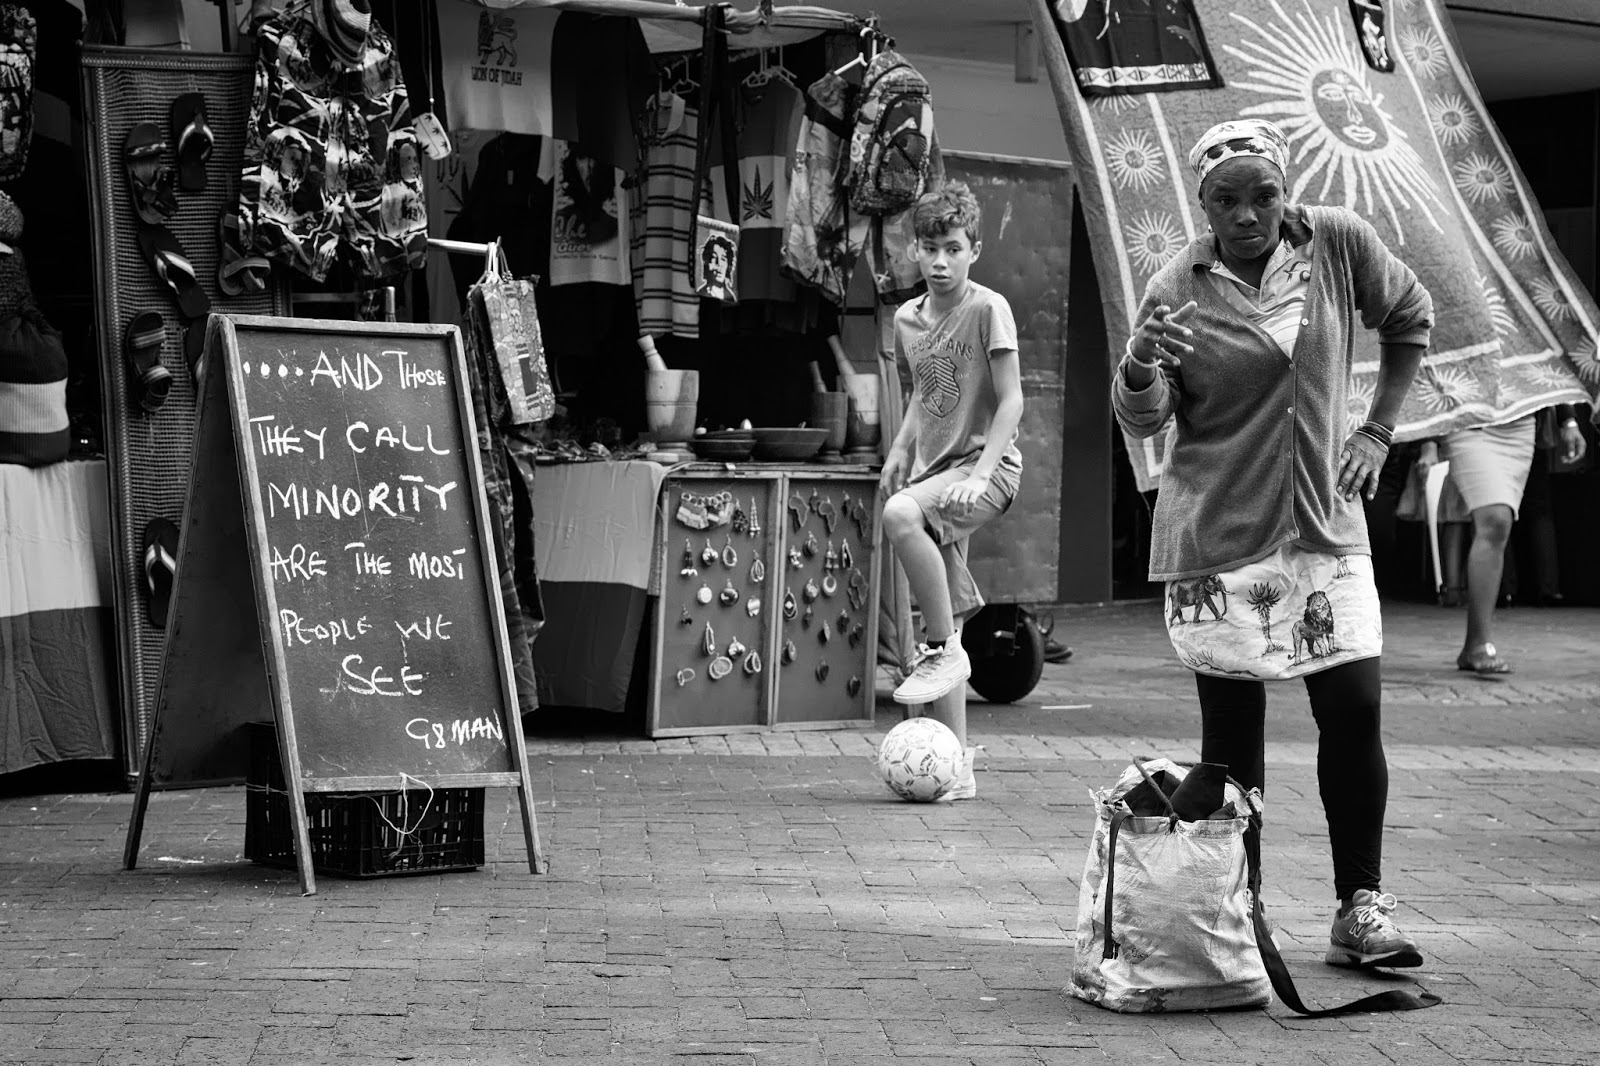 Black and white street photography from South Africa